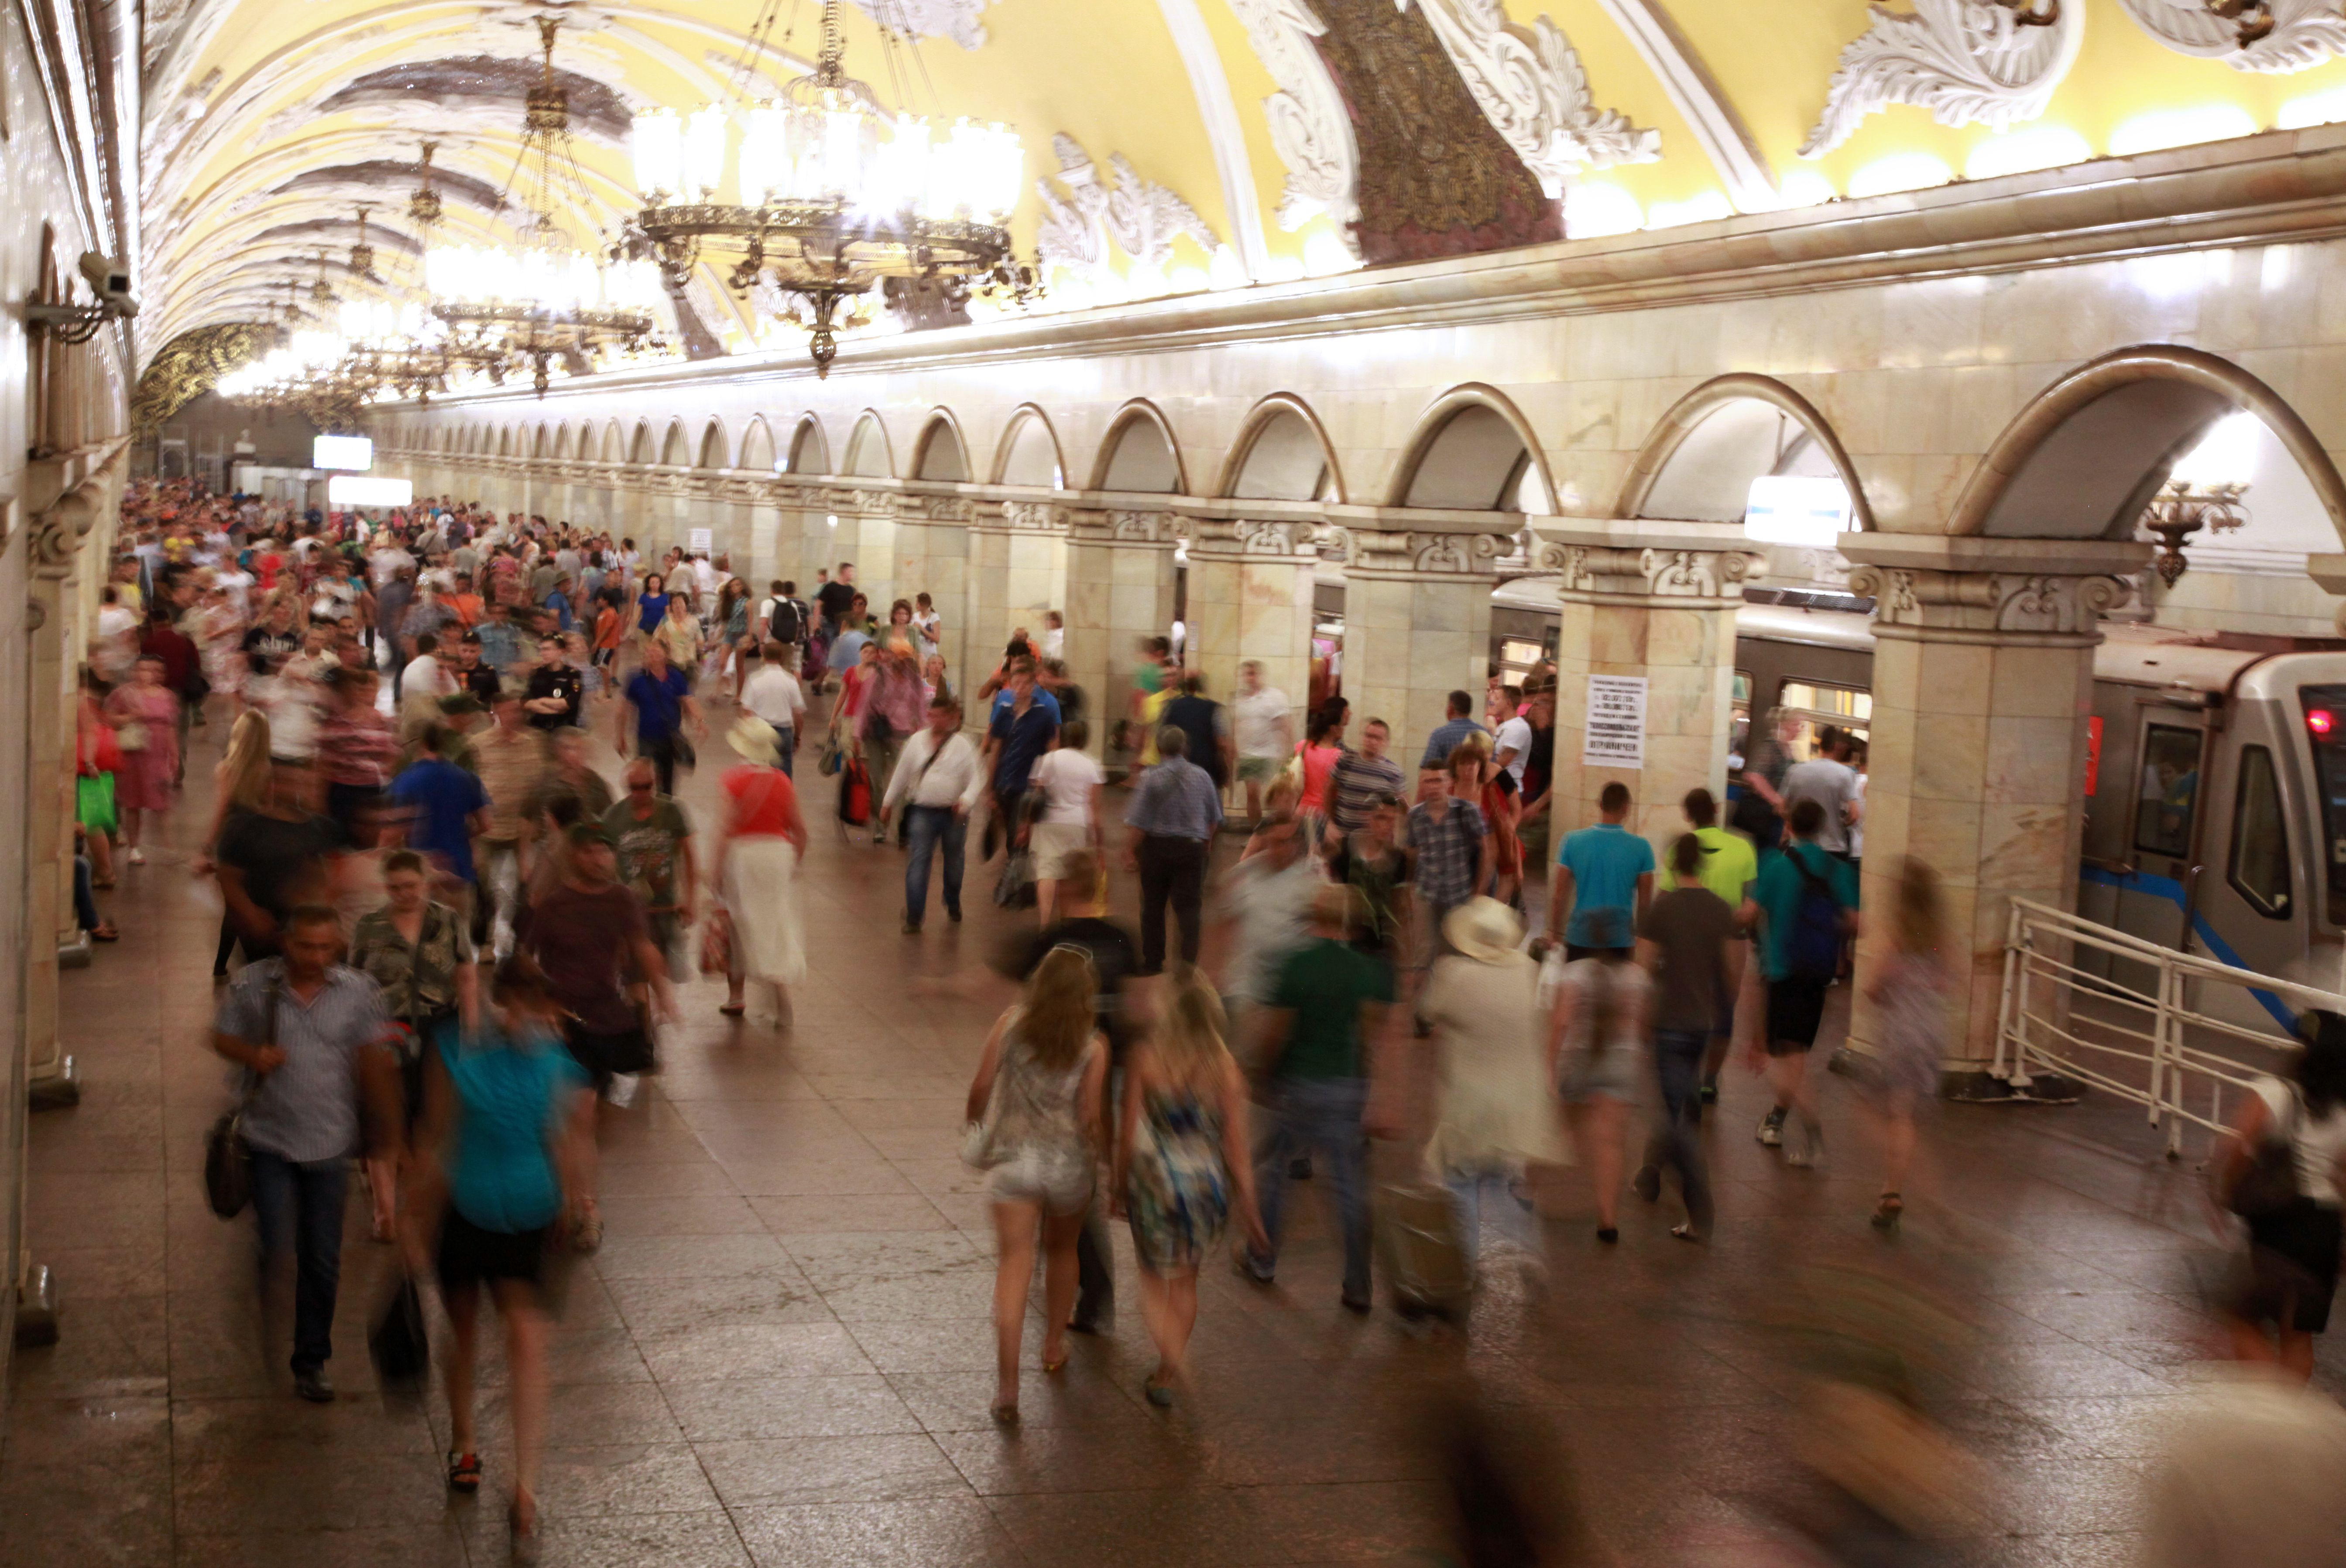 Rush hour in the metro station in Moscow Russia